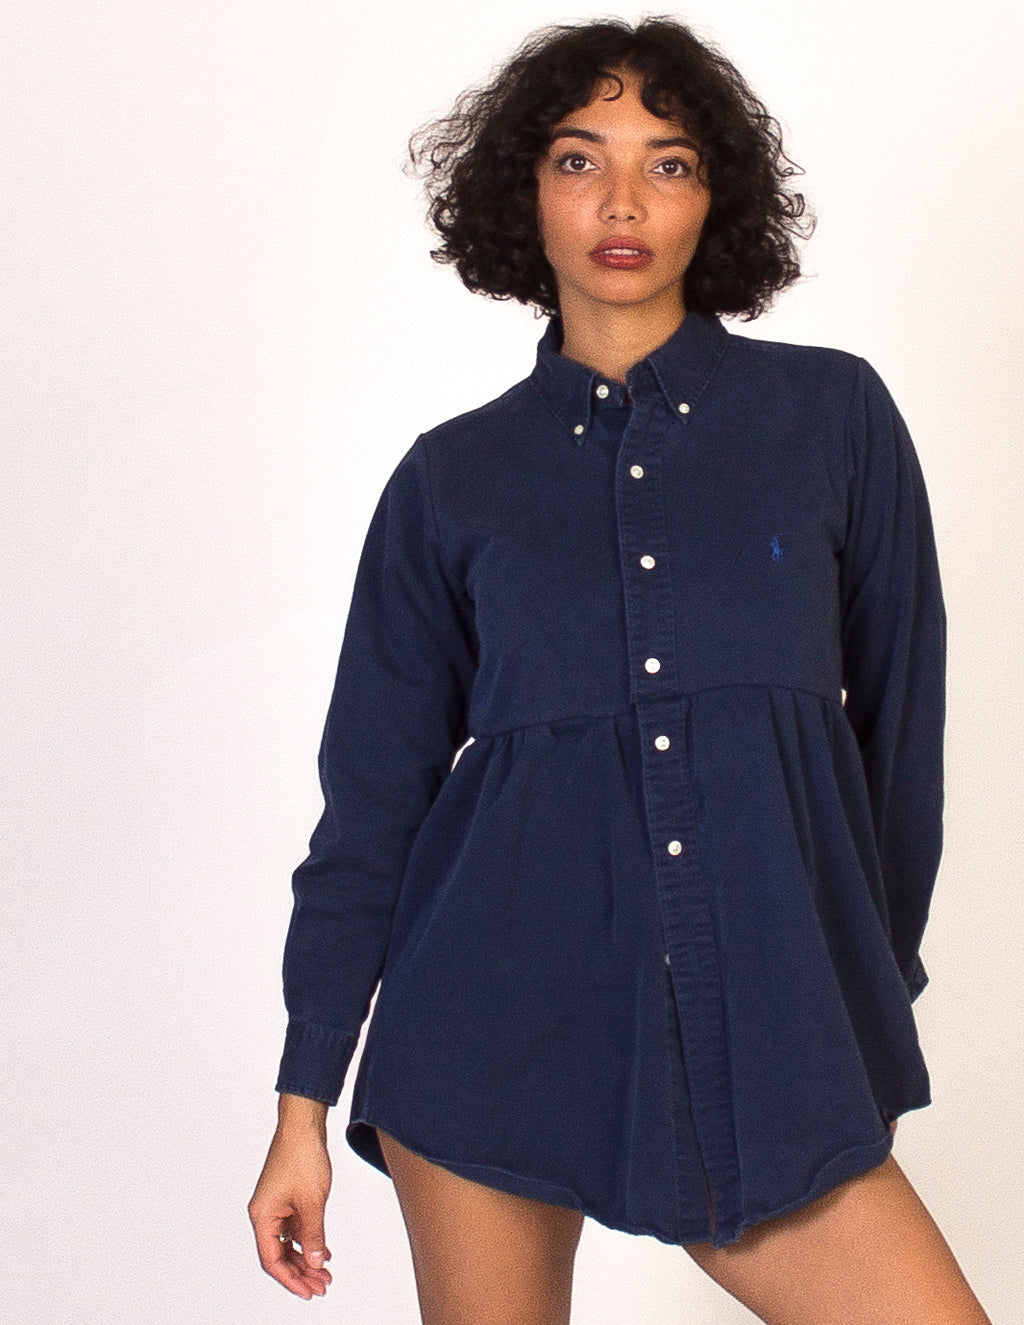 RALPH LAUREN NAVY ROXY SMOCK DRESS